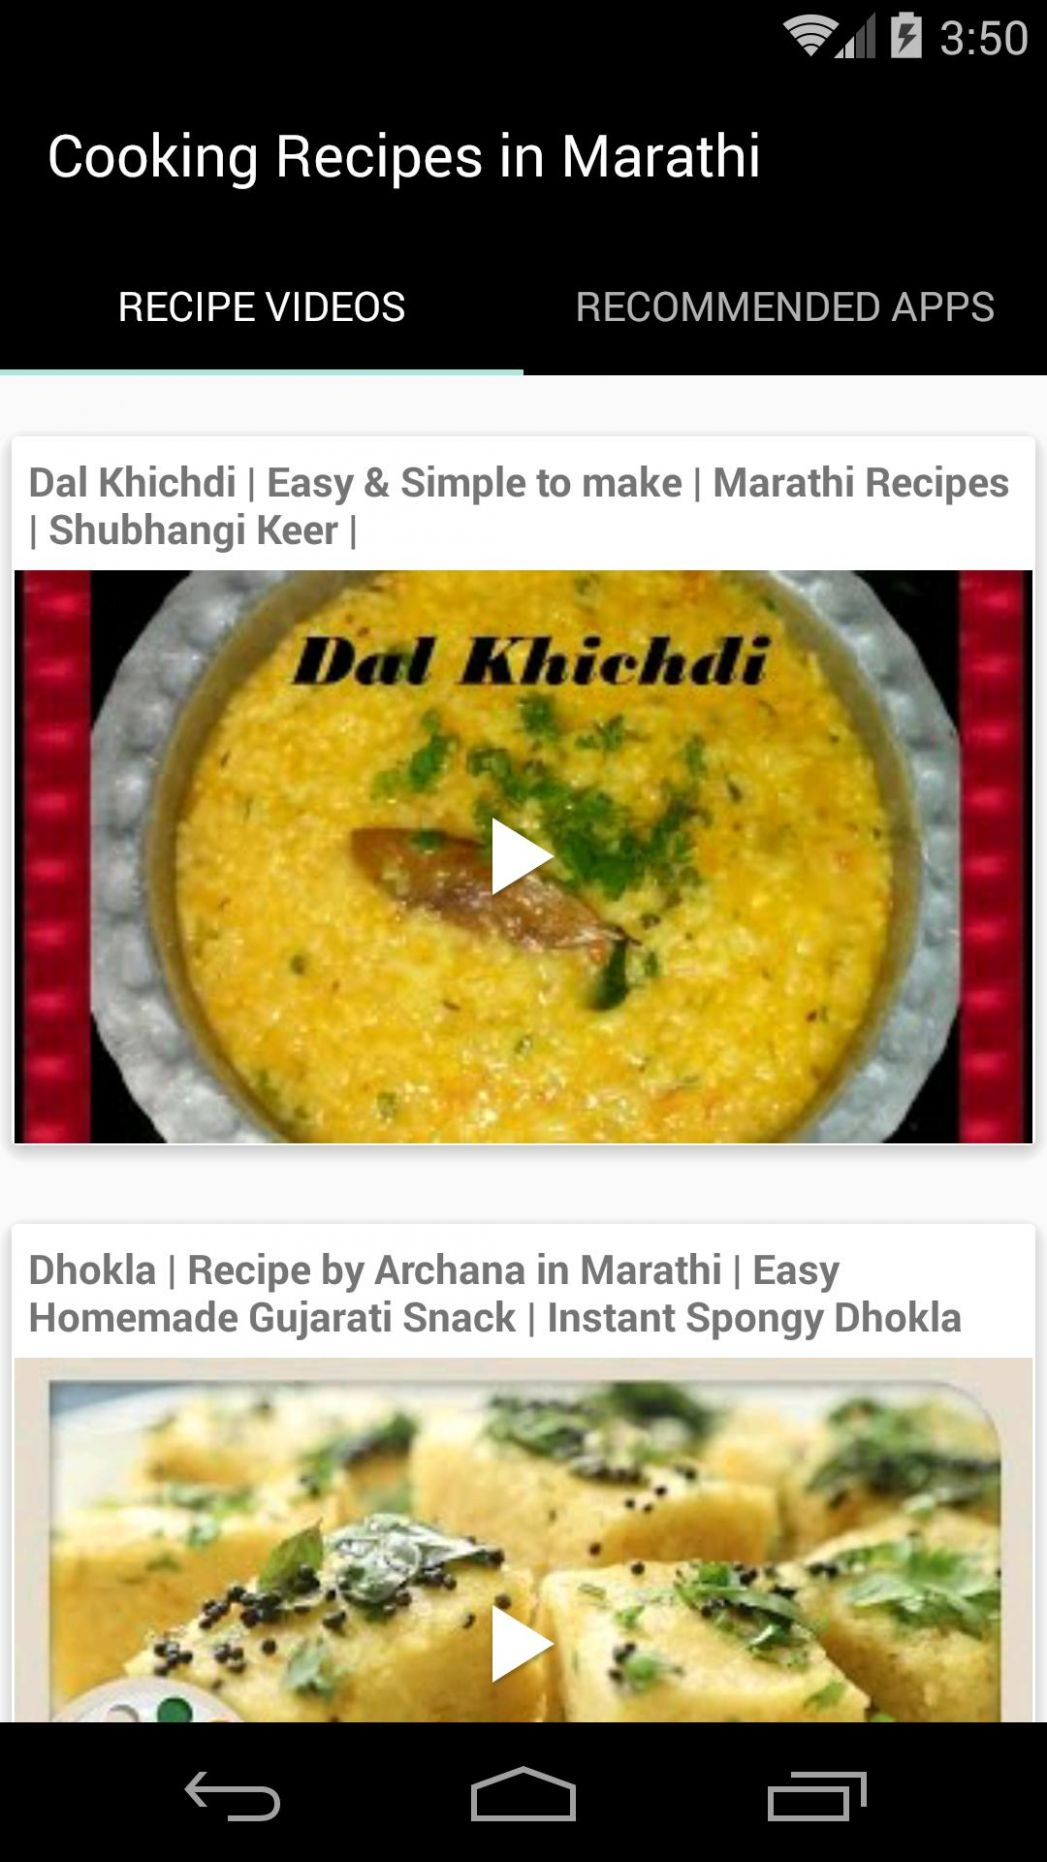 Cooking Recipes in Marathi for Android - APK Download - Cooking Recipes Marathi